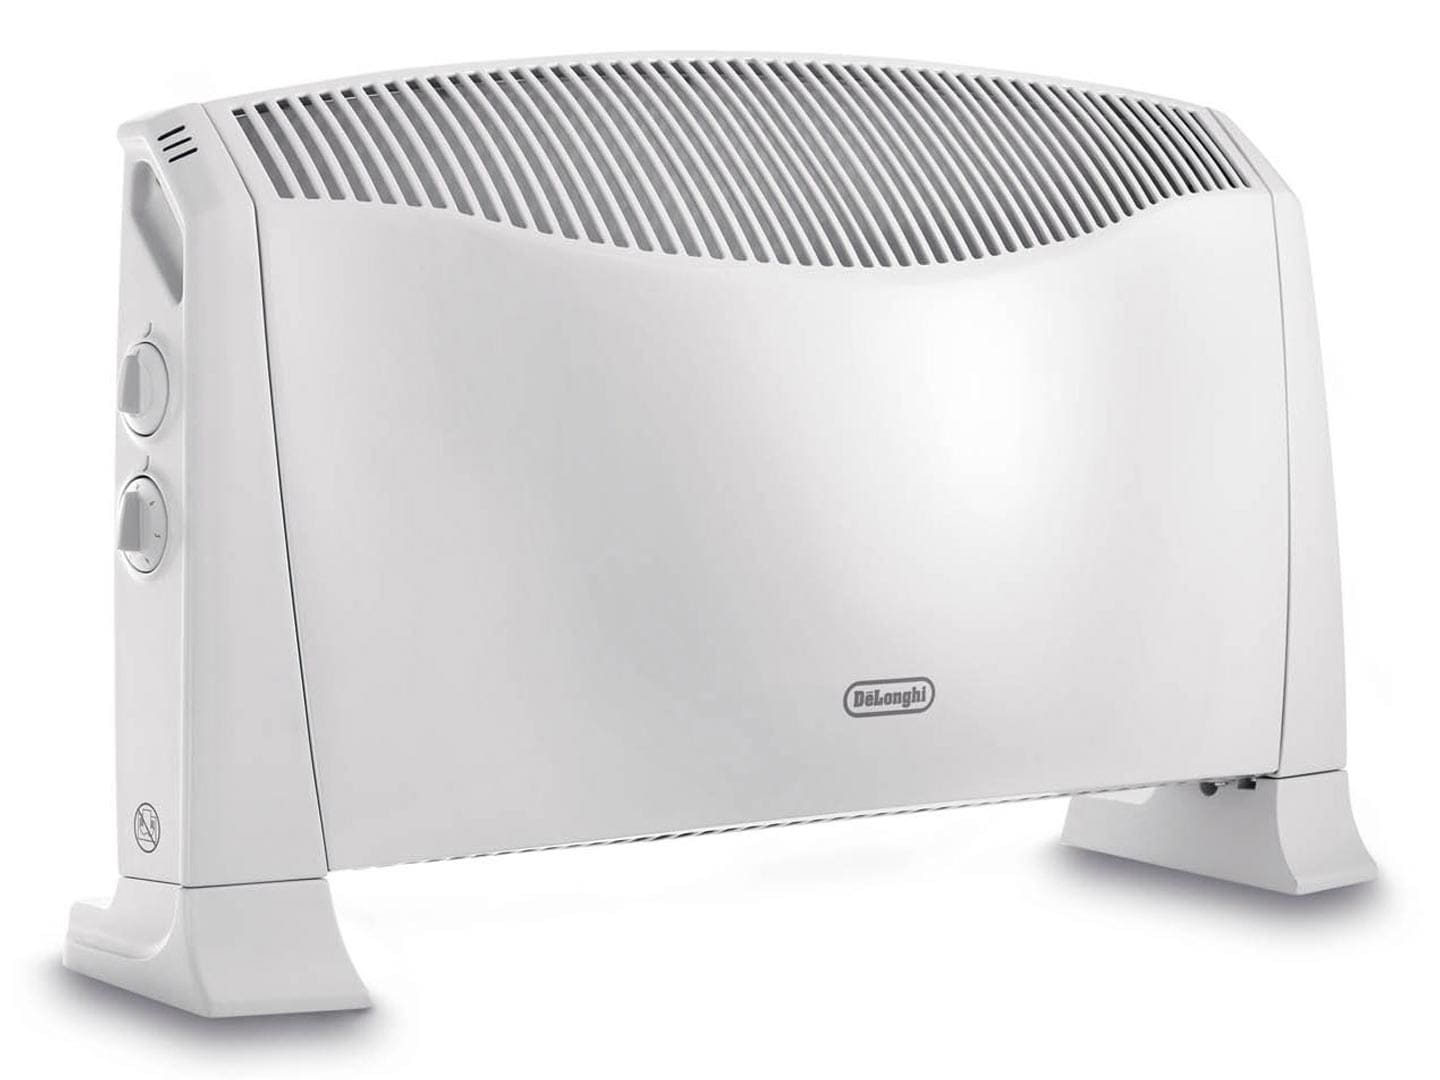 HCS2030 Delonghi France